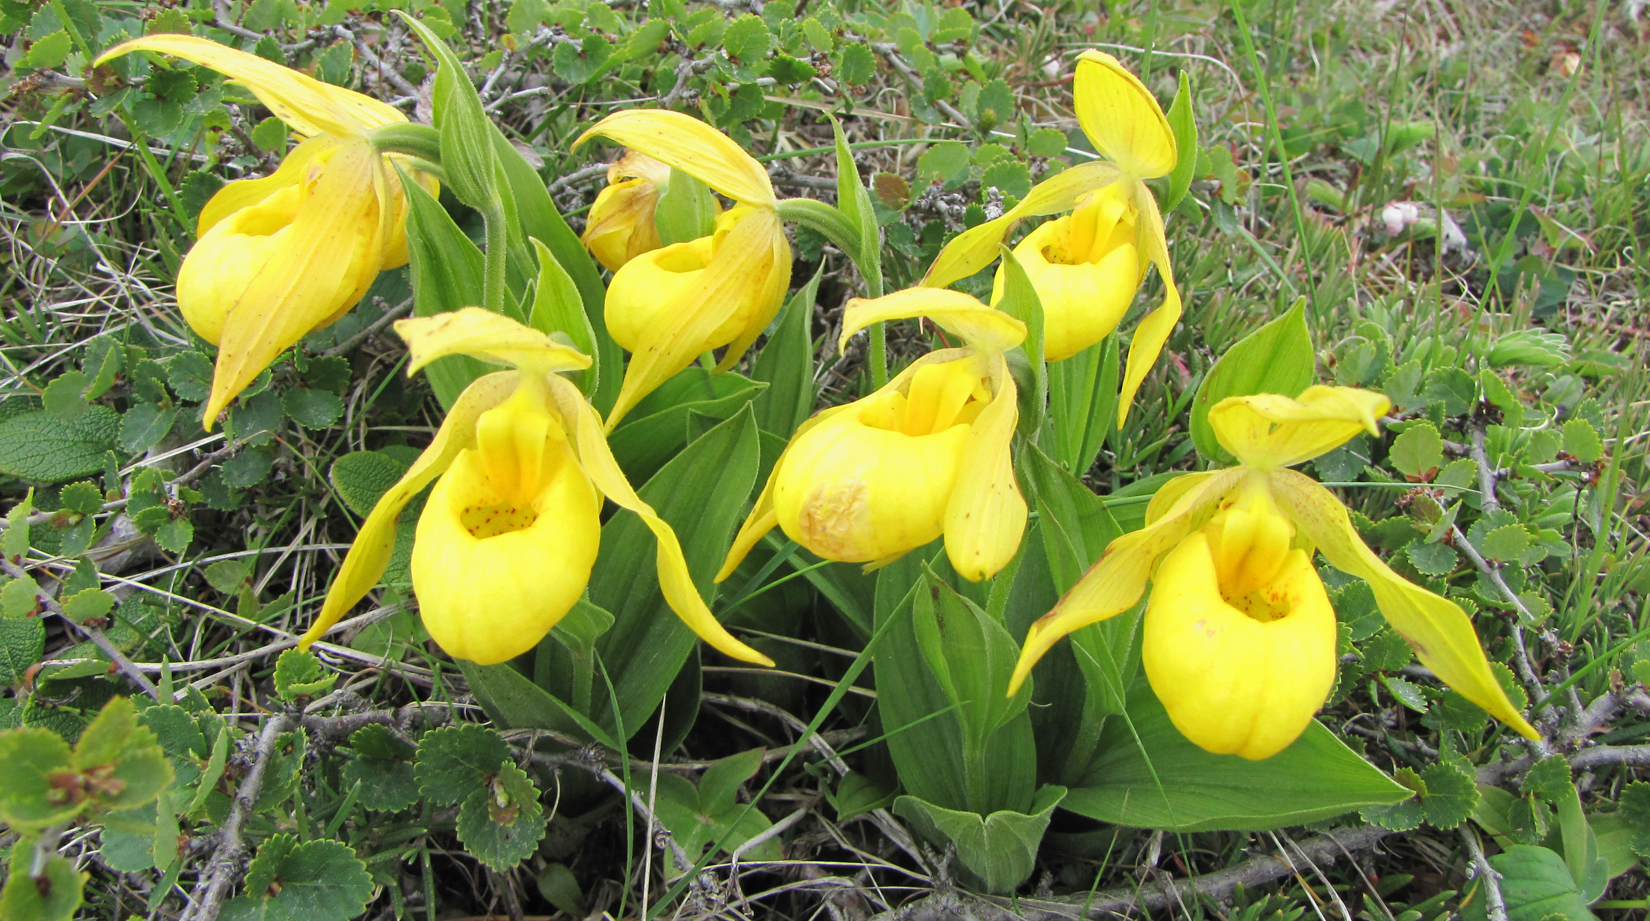 Ladys slipper facts and health benefits ladys slipper flower mightylinksfo